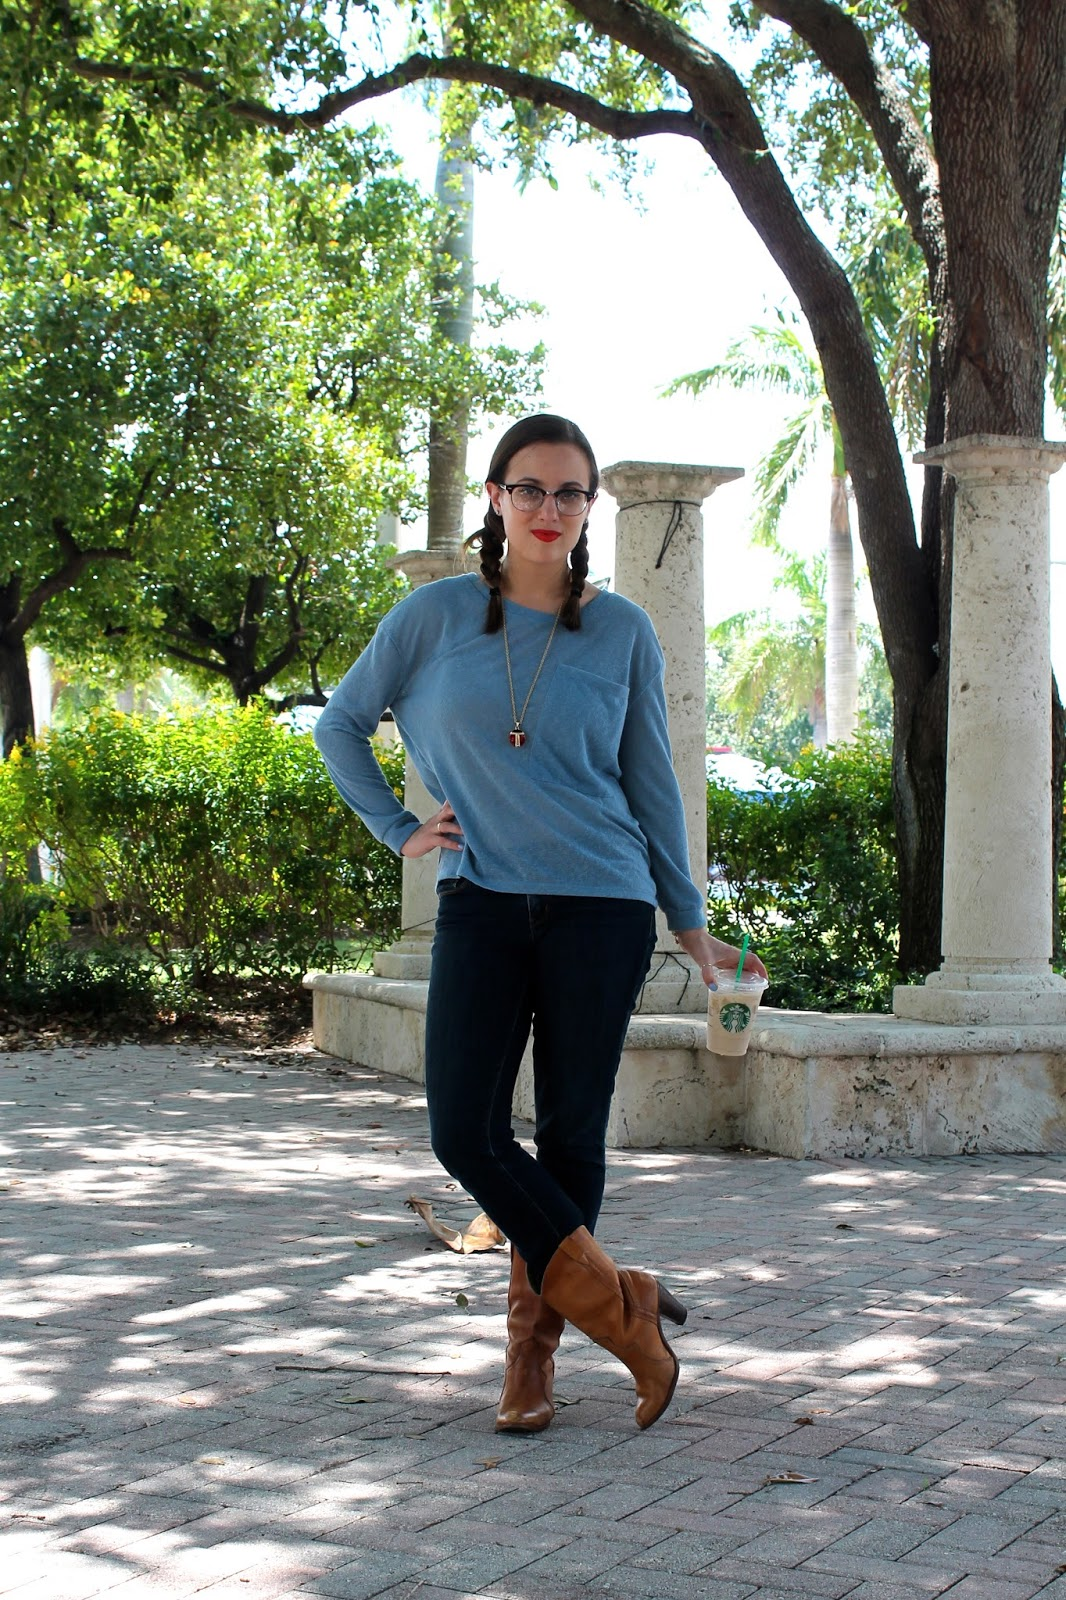 Nordstrom Rack, cloth, Levi's, M.A.C., MET Store, Ray-Ban, fashion blog, Miami fashion blogger, Miami, style blog, Miami style, what I wore, outfit ideas, weekend outfits, Southern style